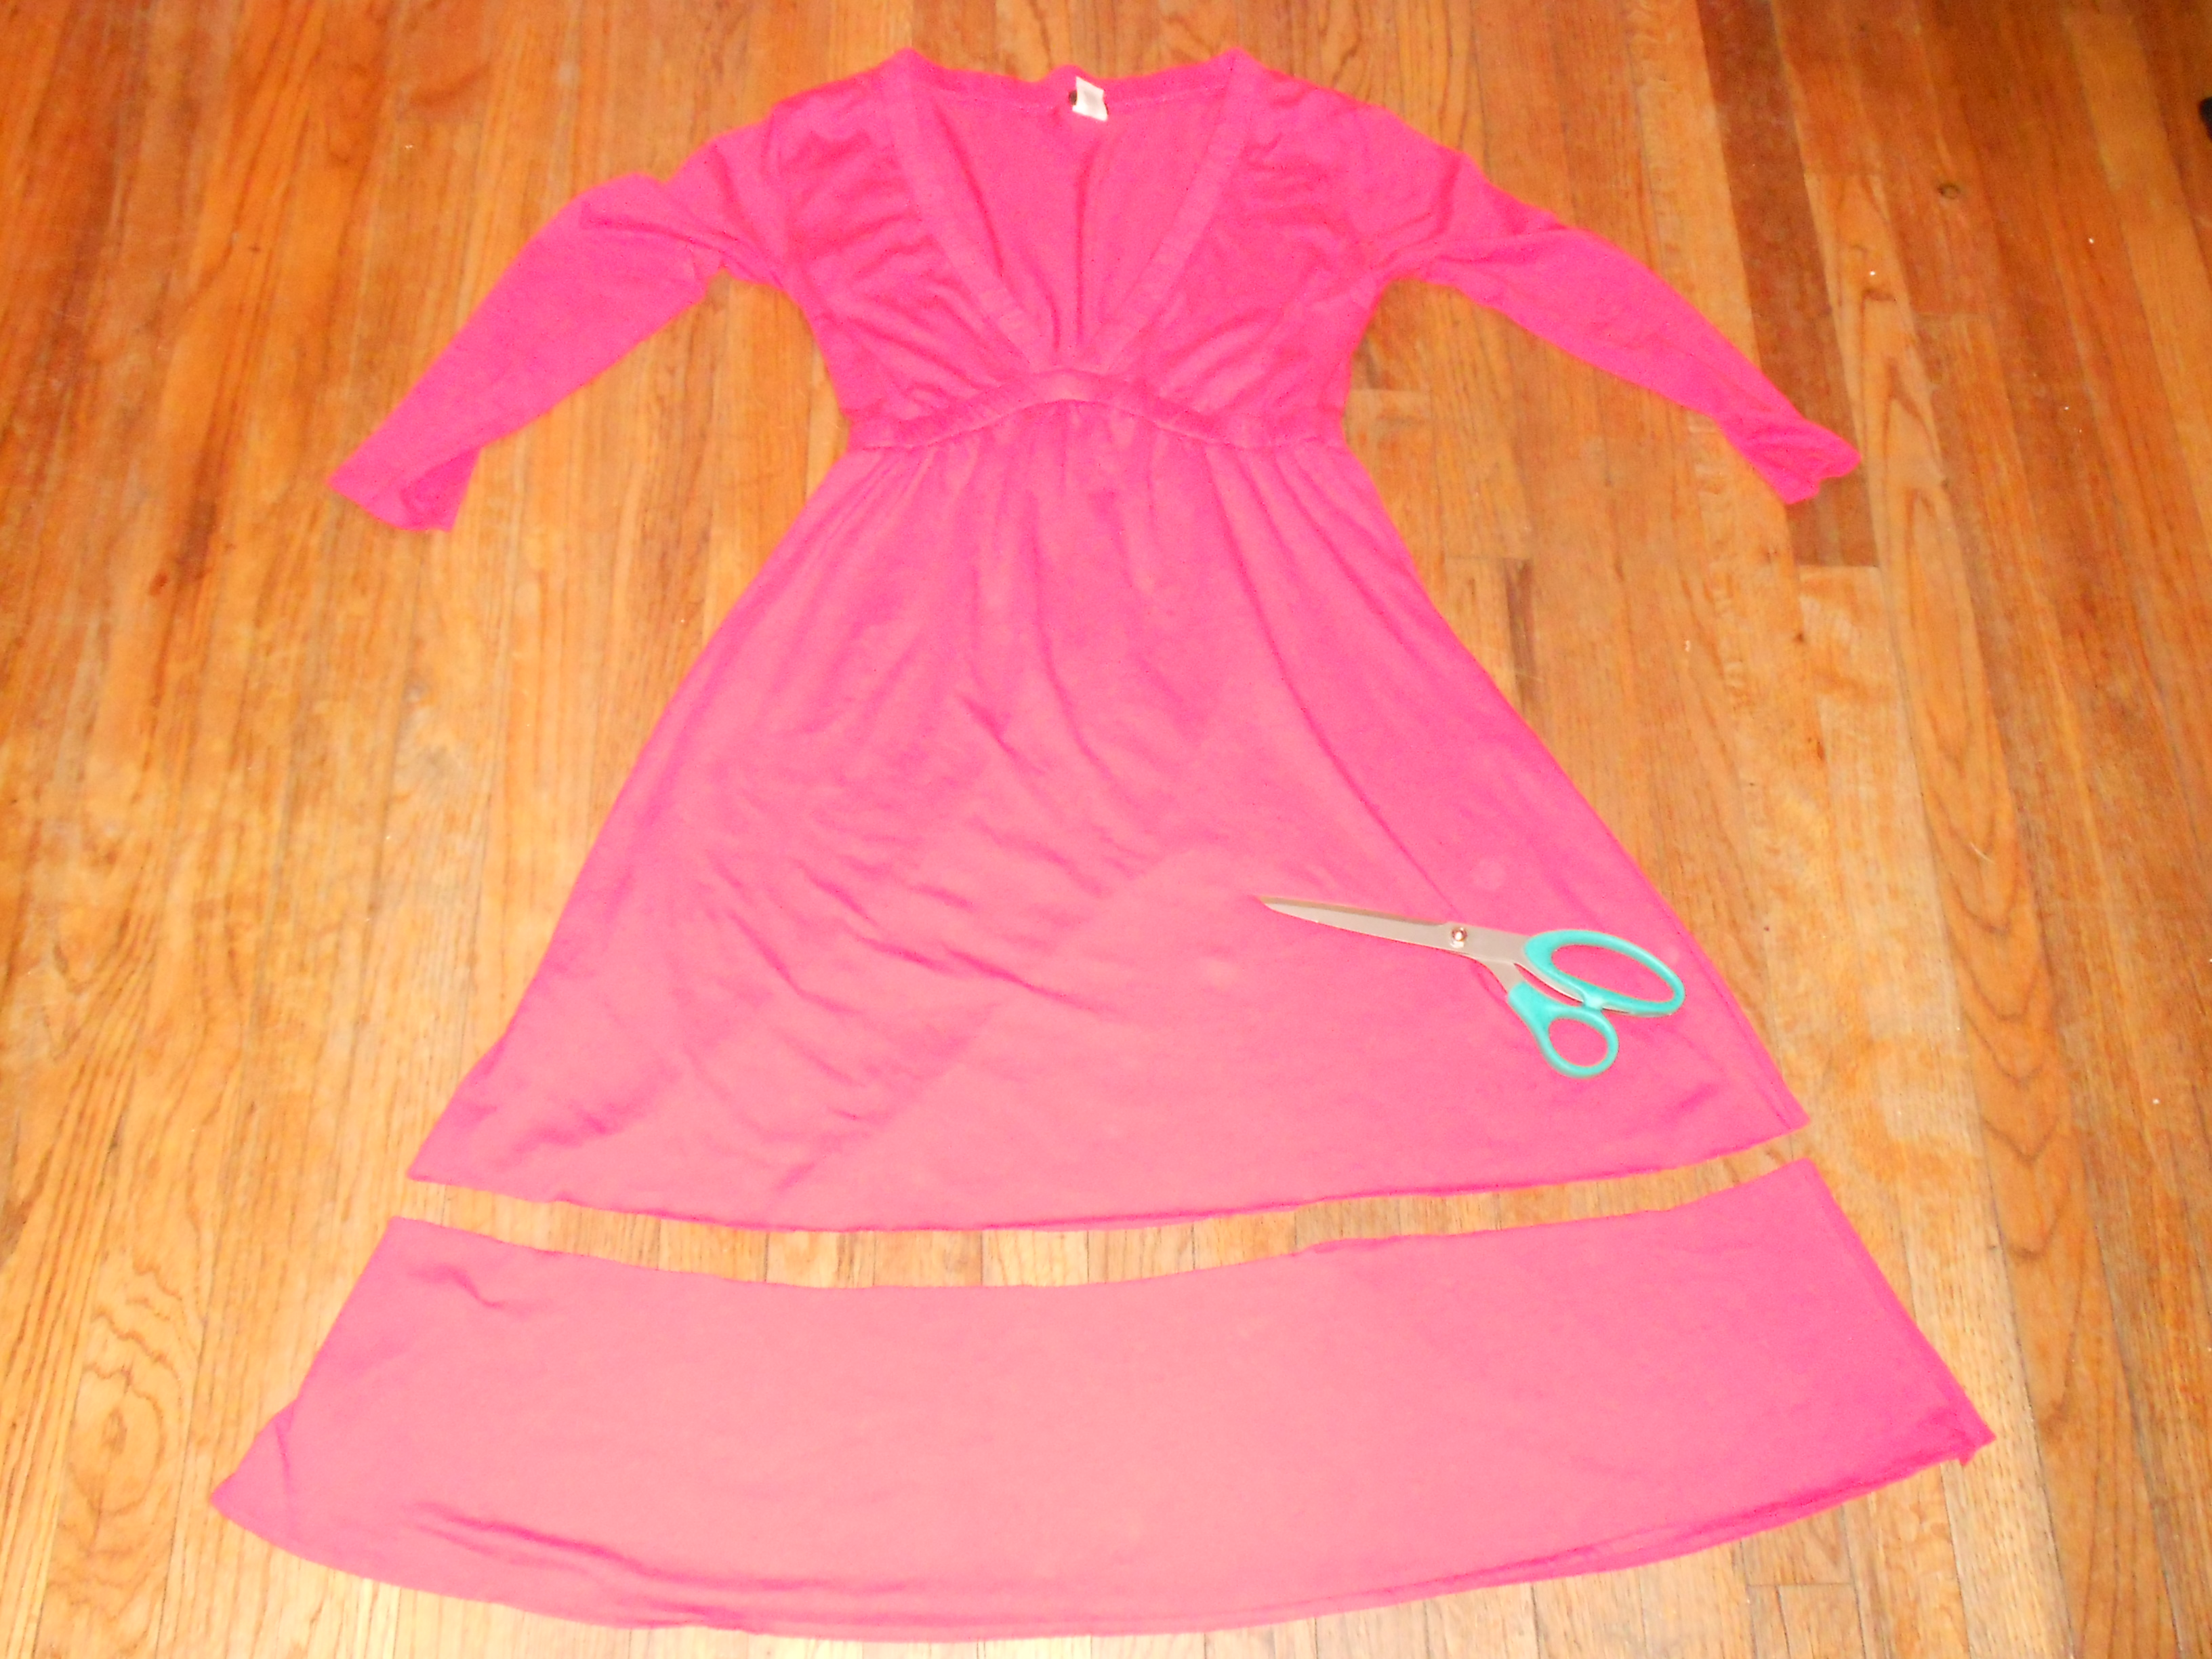 Day 76: An Early Fall Frock 5